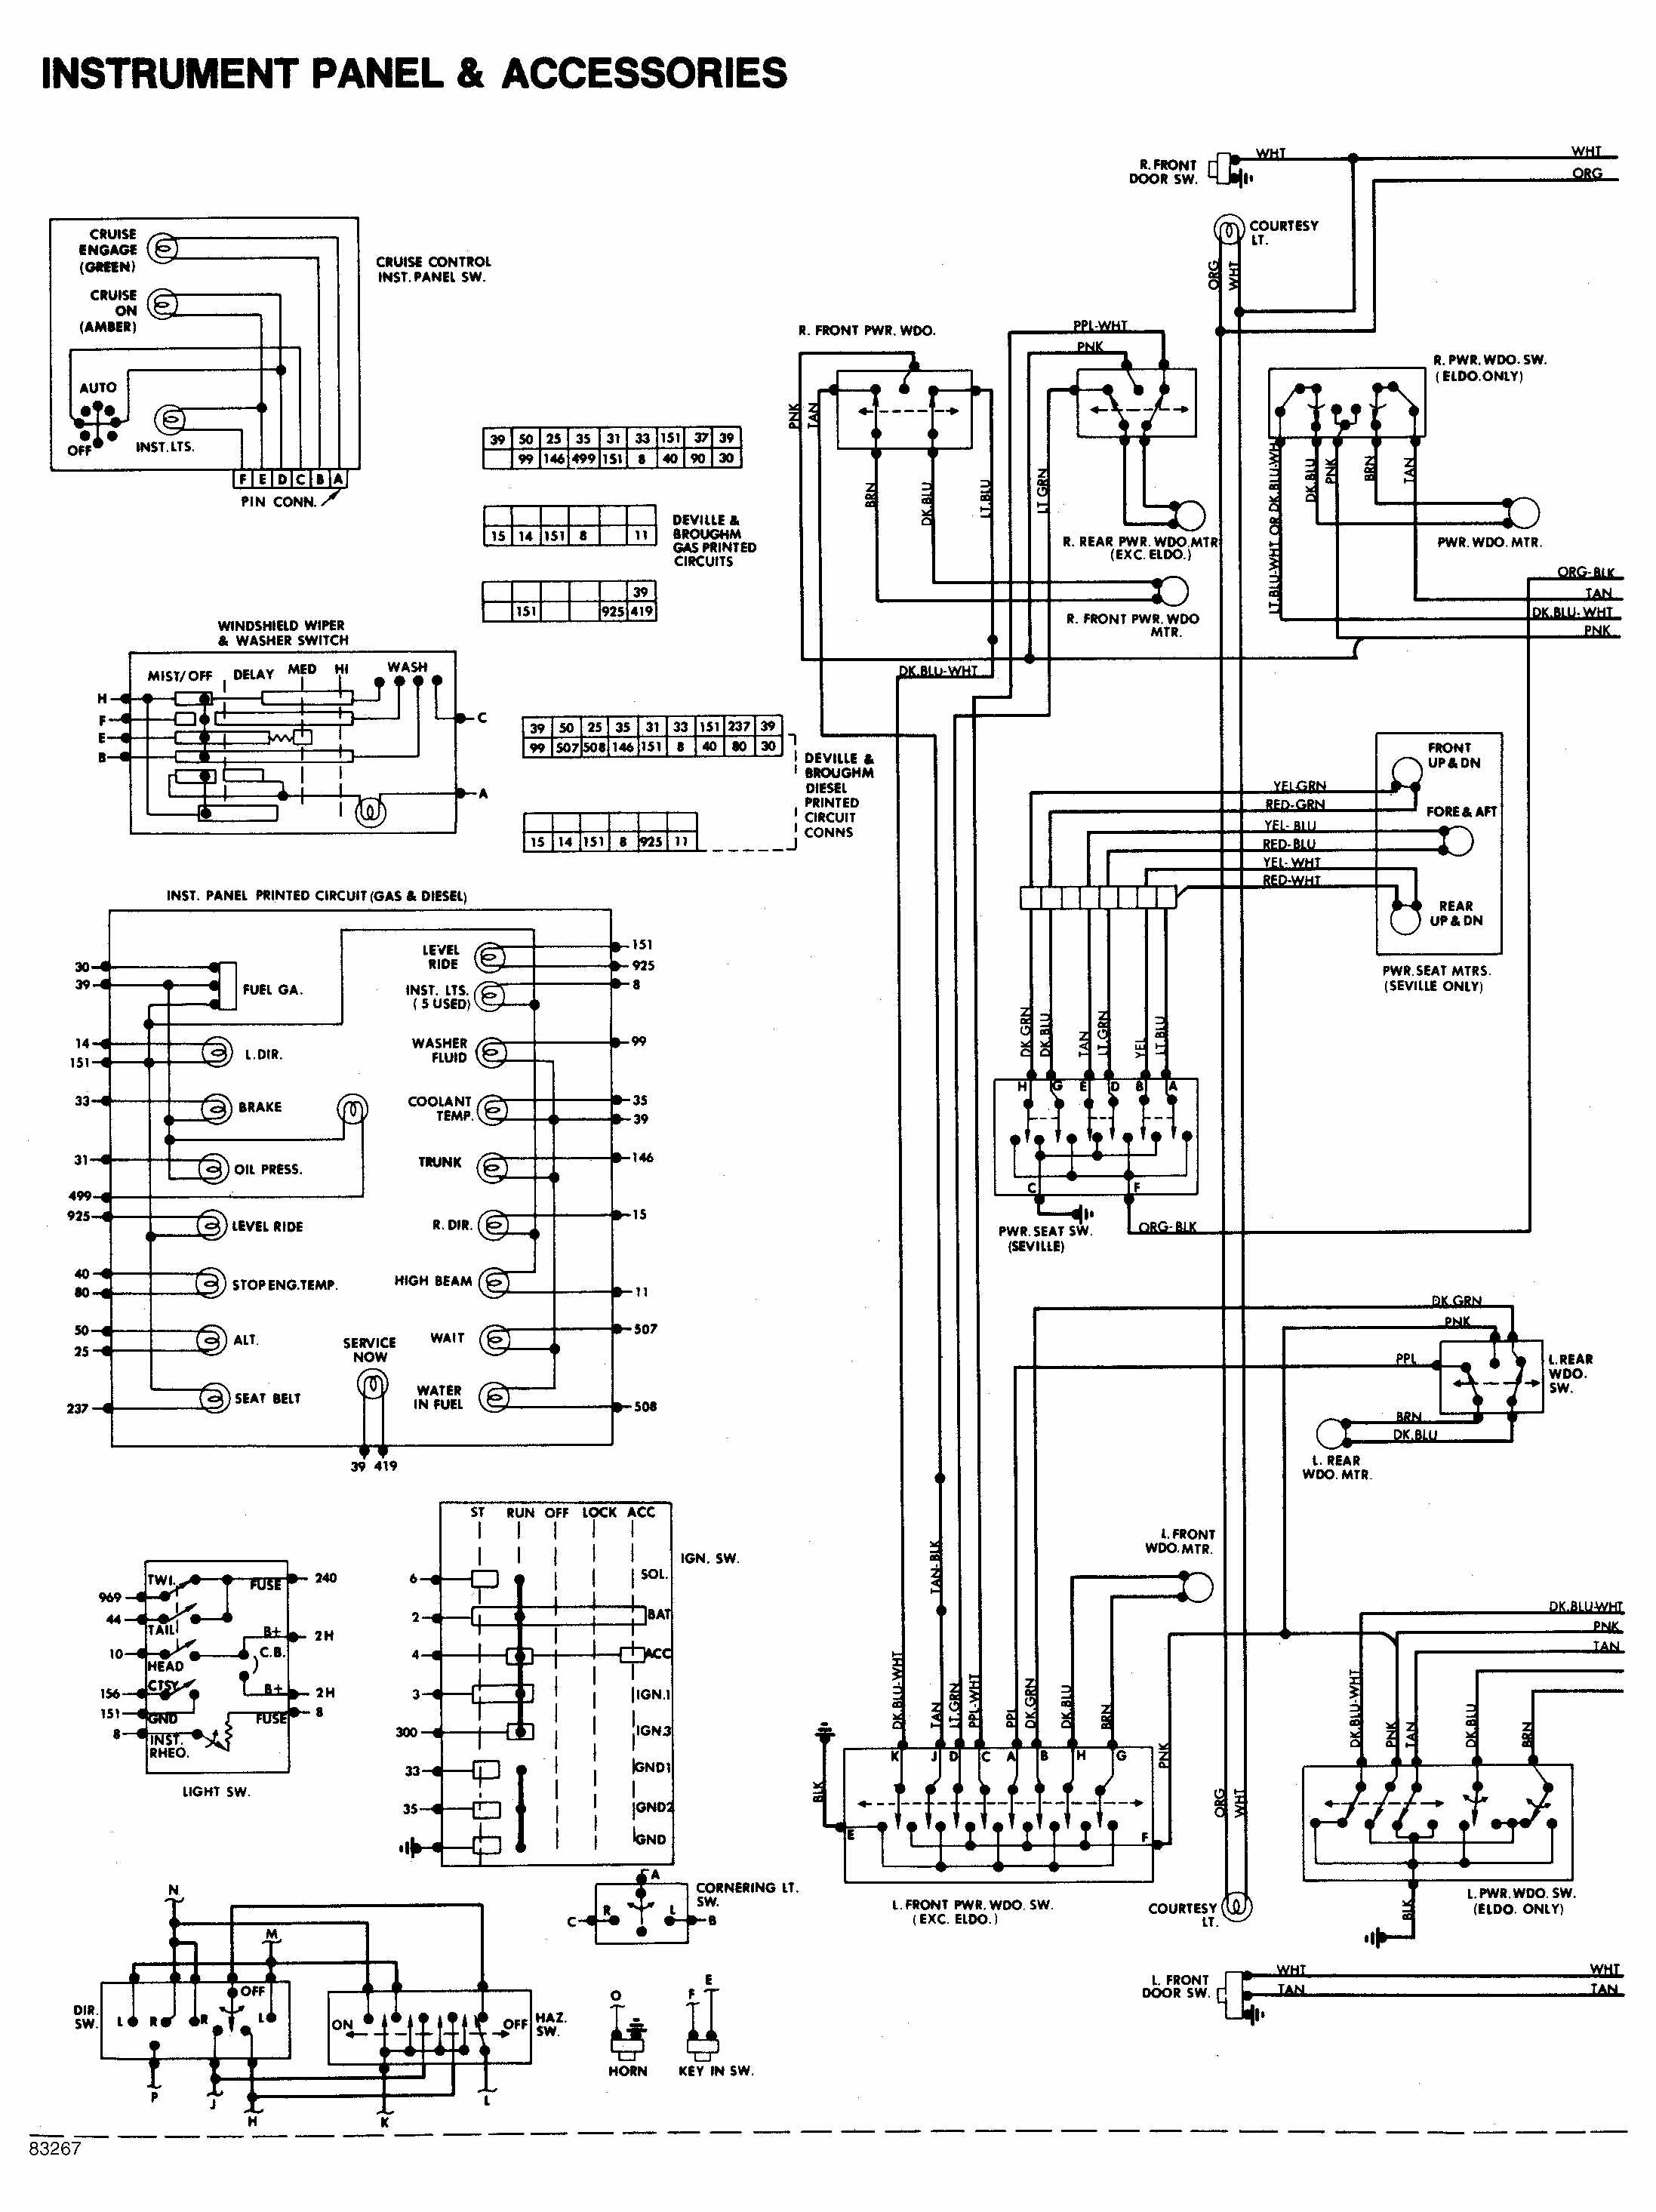 instrument panel and accessories wiring diagram of 1984 cadillac deville gm wiring diagrams 95 98 gm truck wiring diagrams \u2022 wiring 1984 Corvette Dash Cluster at bayanpartner.co